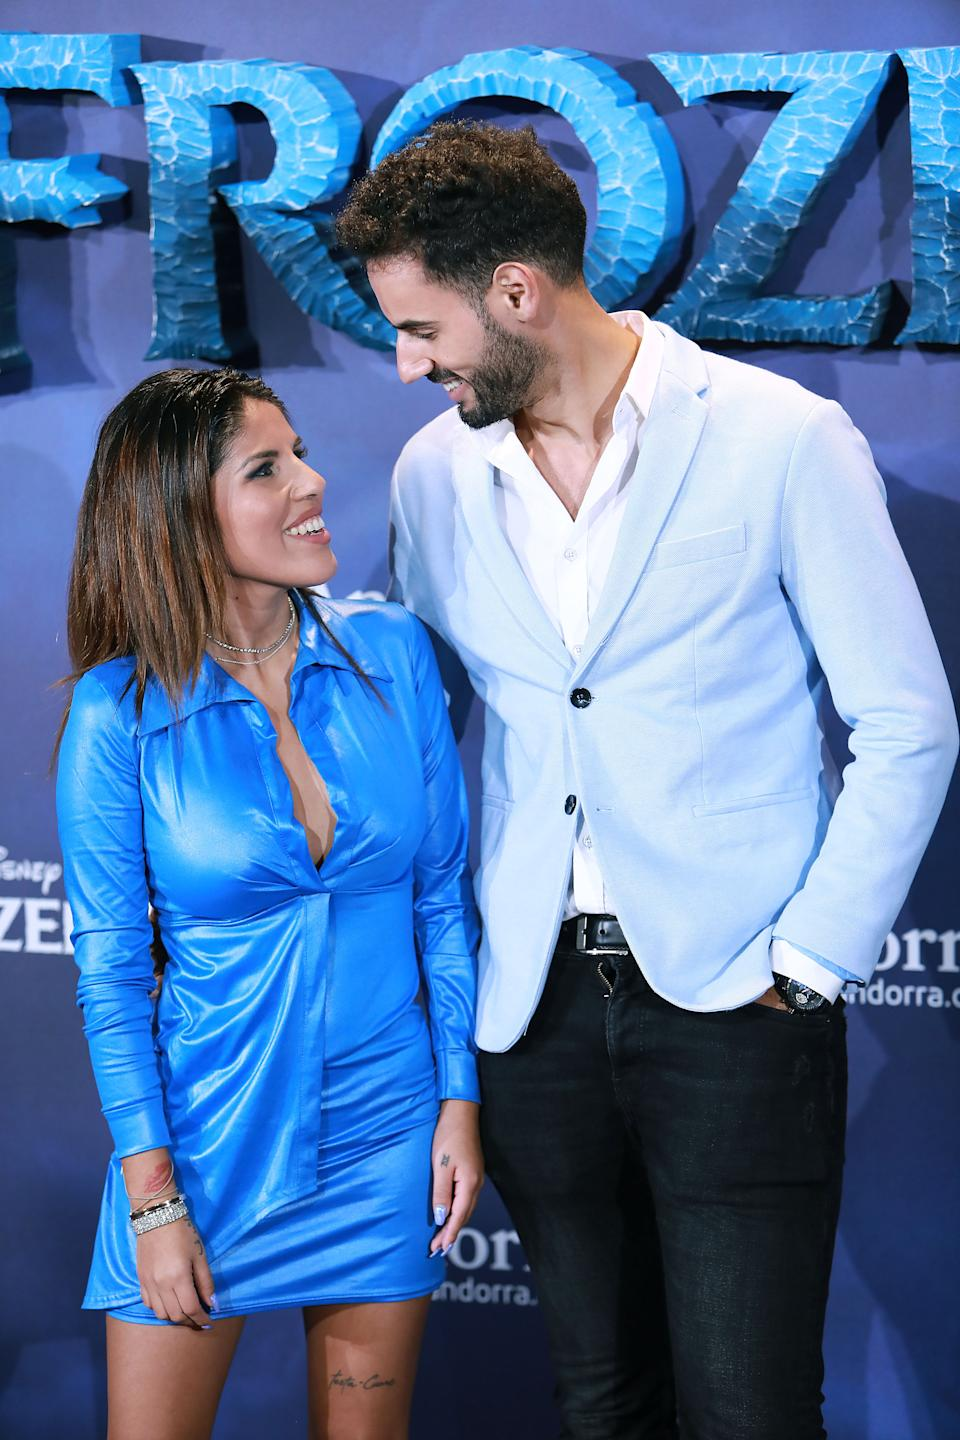 MADRID, SPAIN - NOVEMBER 19: Asraf Beno and Isa Pantoja attend 'Frozen II' premiere at Callao Cinema on November 19, 2019 in Madrid, Spain. (Photo by Europa Press Entertainment/Europa Press via Getty Images)